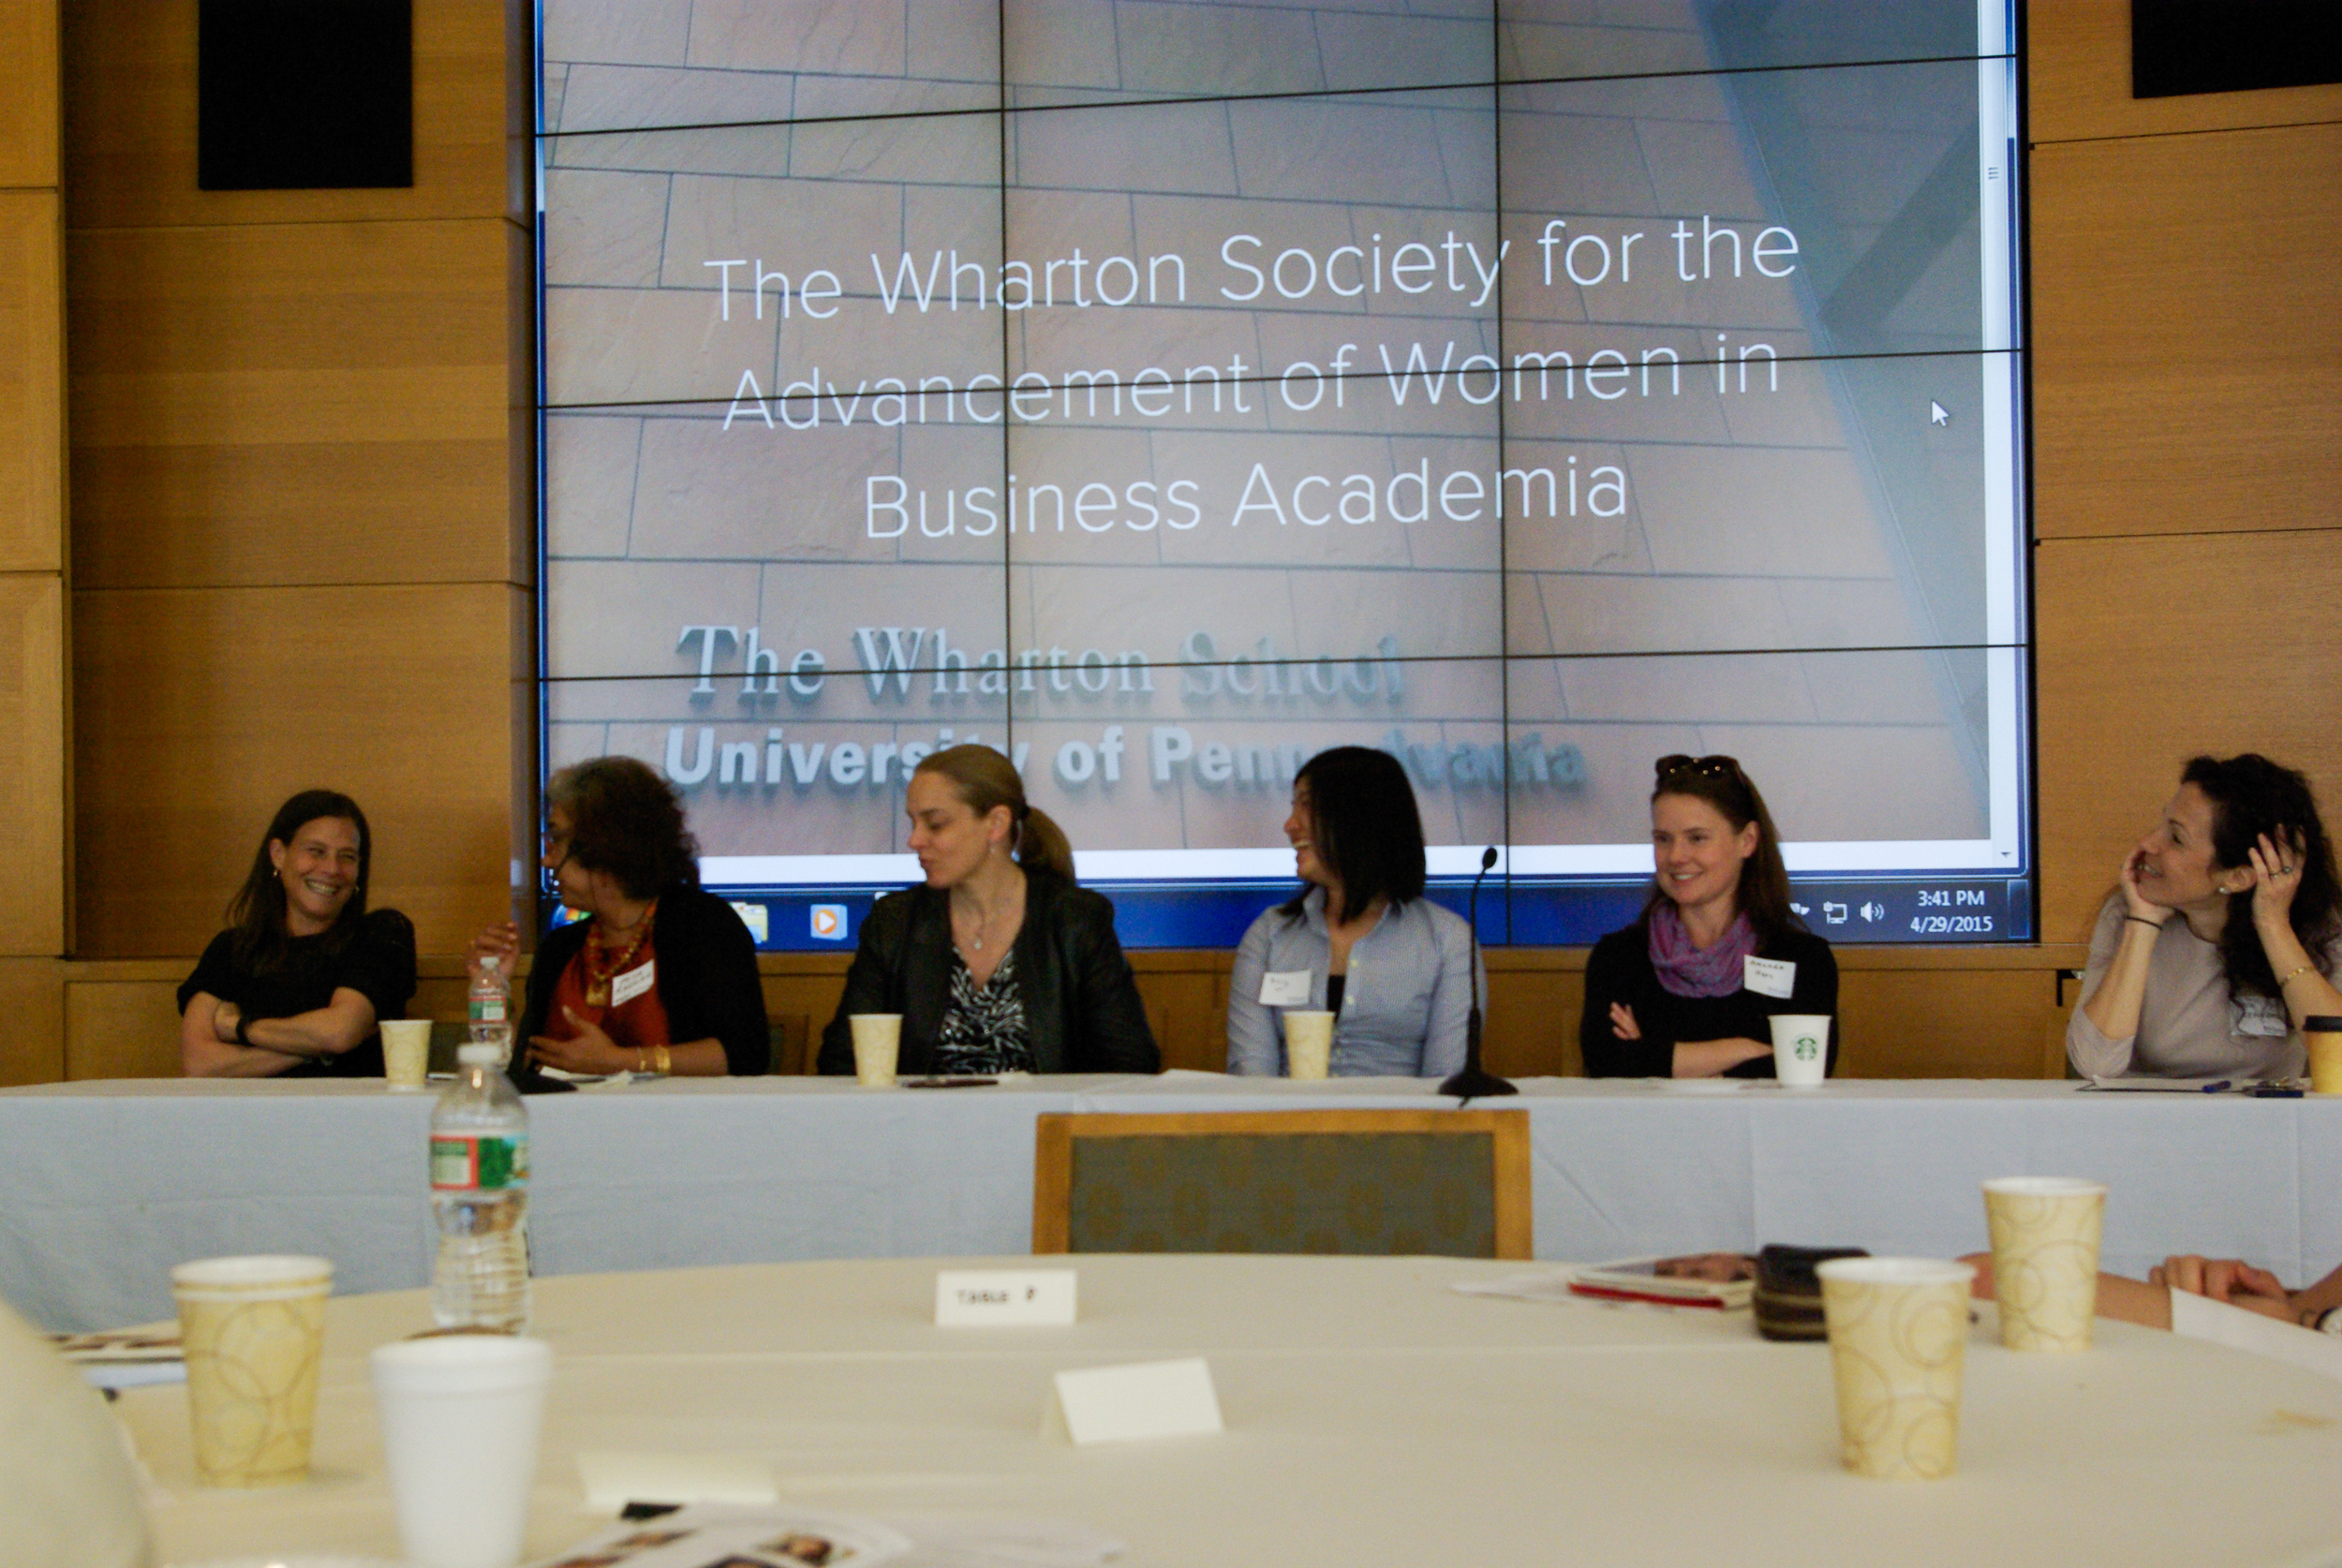 FACULTY PANEL (FROM LEFT TO RIGHT): BARBARA KAHN,  THE WHARTON SCHOOL (MARKETING) ; PRIYA RAGHUBIR,  nyu sTERN sCHOOL OF BUSINESS (mARKETING) ; lORI ROSENKOPF,  tHE wHARTON sCHOOL (mANAGEMENT) ; pO-LING LOH,  tHE wHARTON sCHOOL (STATISTICS) ; aMANDA sTARC,  tHE wHARTON sCHOOL (hEALTHCARE mANAGEMENT) ; aMY sEPINWALL,  tHE wHARTON sCHOOL (eTHICS & lEGAL sTUDIES)